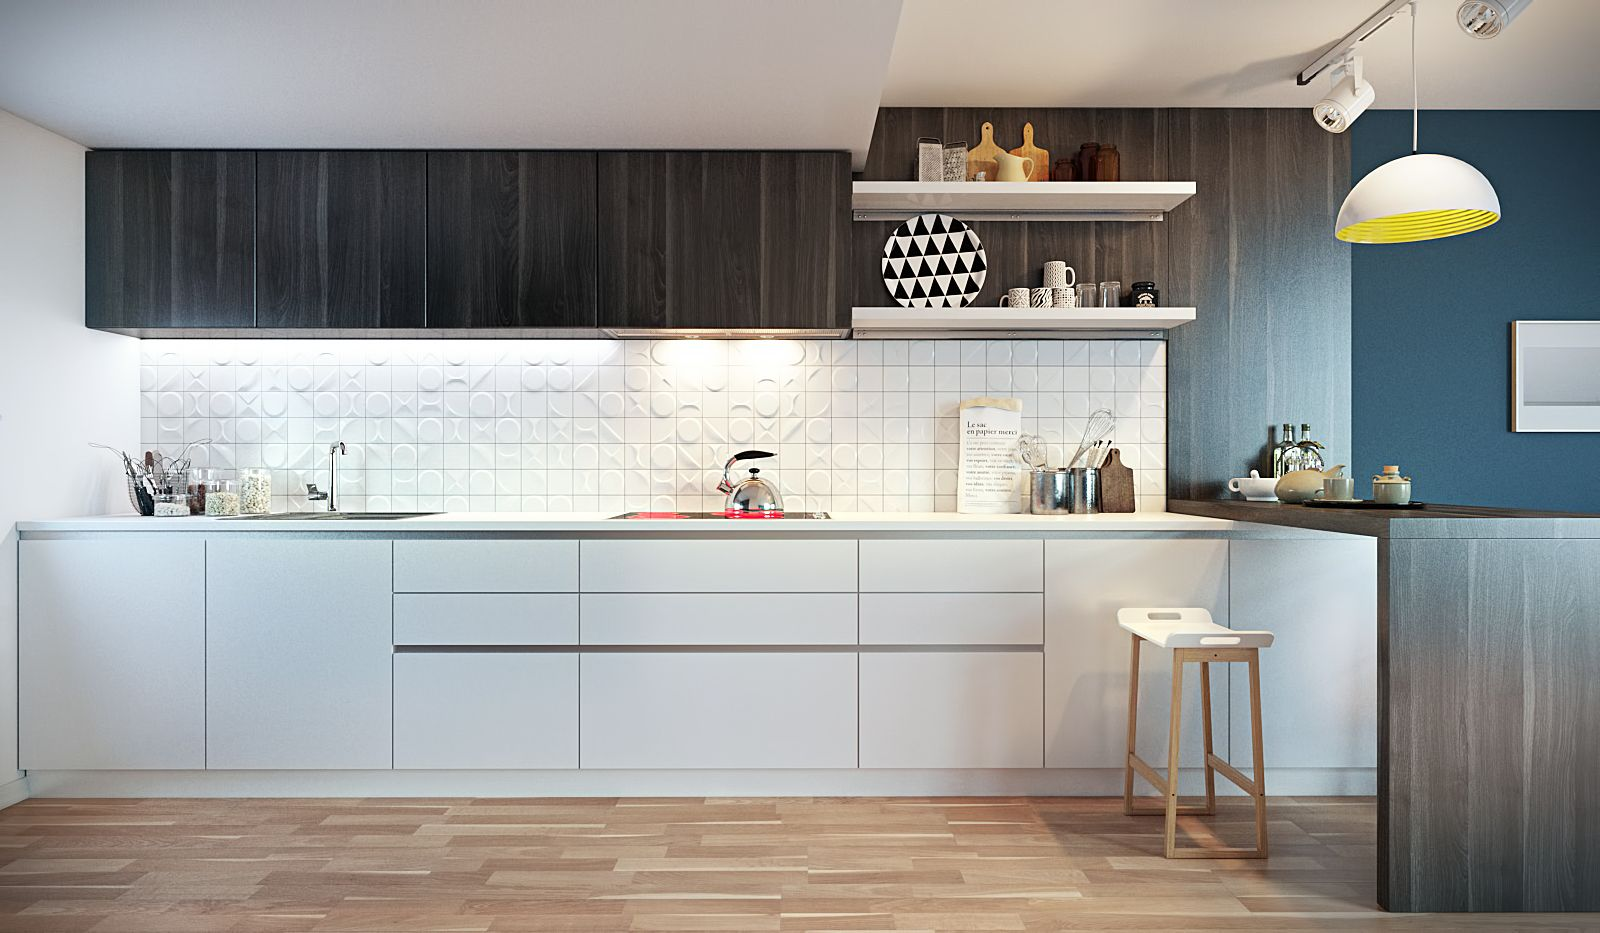 Choosing Best Kitchen Tile Ideas. Linear layout of the contrasting furniture set and stone tile as a backsplash